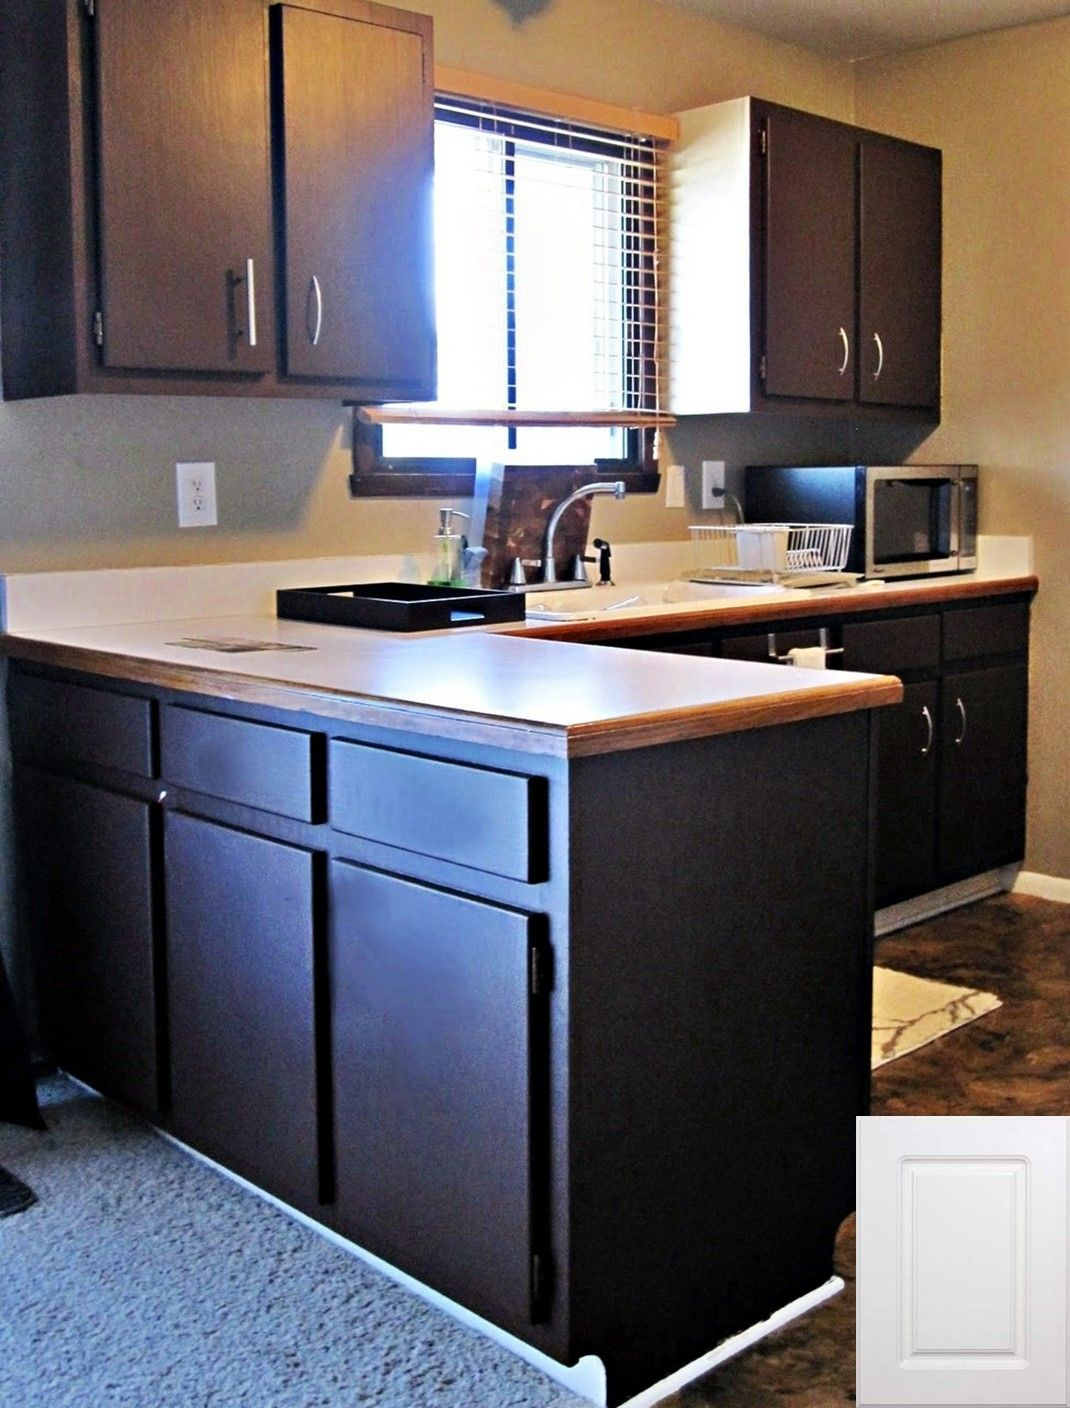 Making Your Wood Kitchen Cabinets Last For Almost A Lifetime Birch Wood Kitchen Cabinets Reviews Grey Kitchen Cabinet Interior